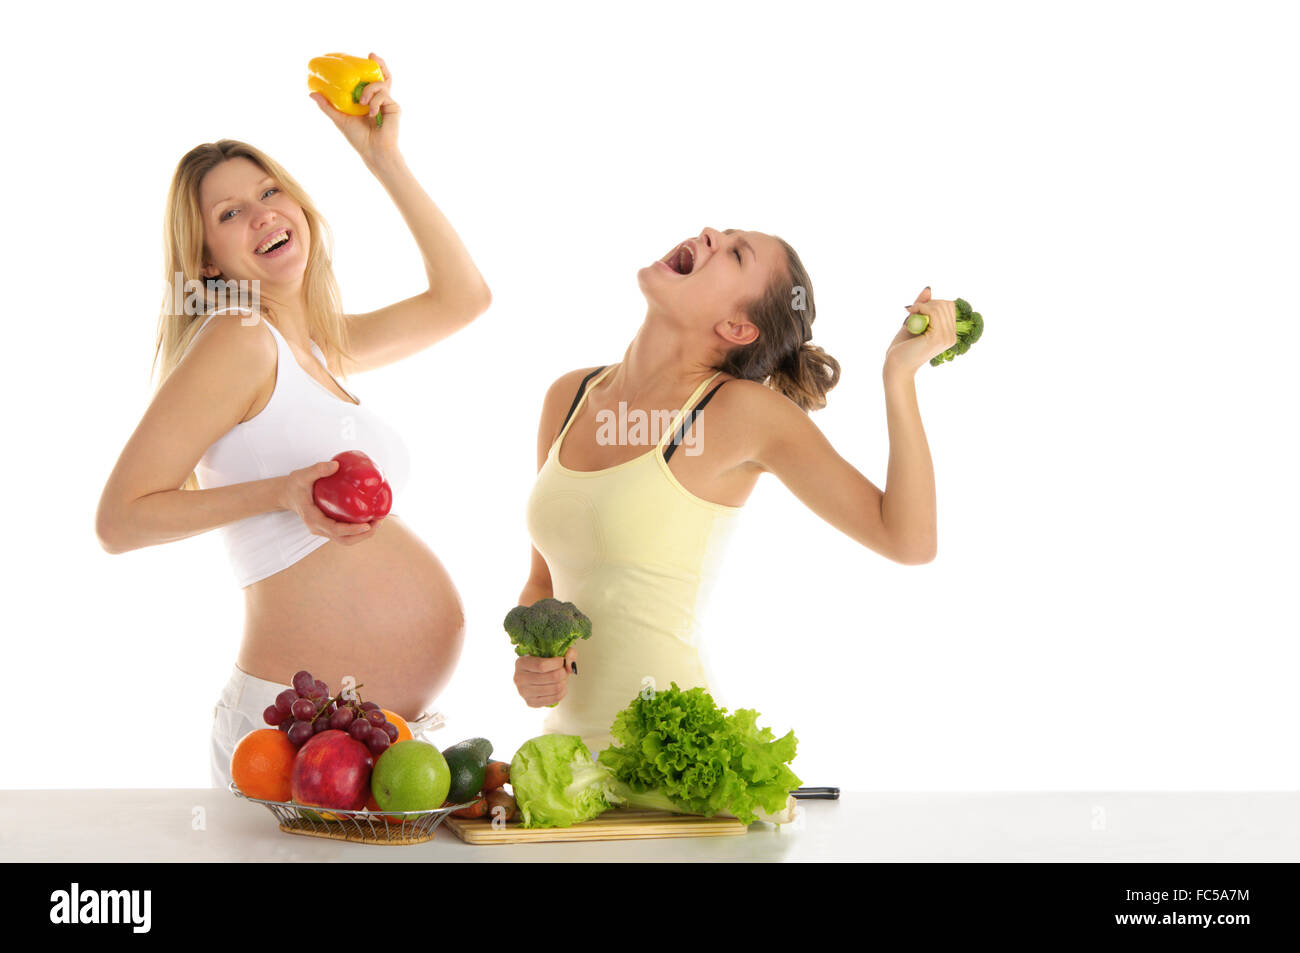 Two women dance with fruits and vegetables - Stock Image